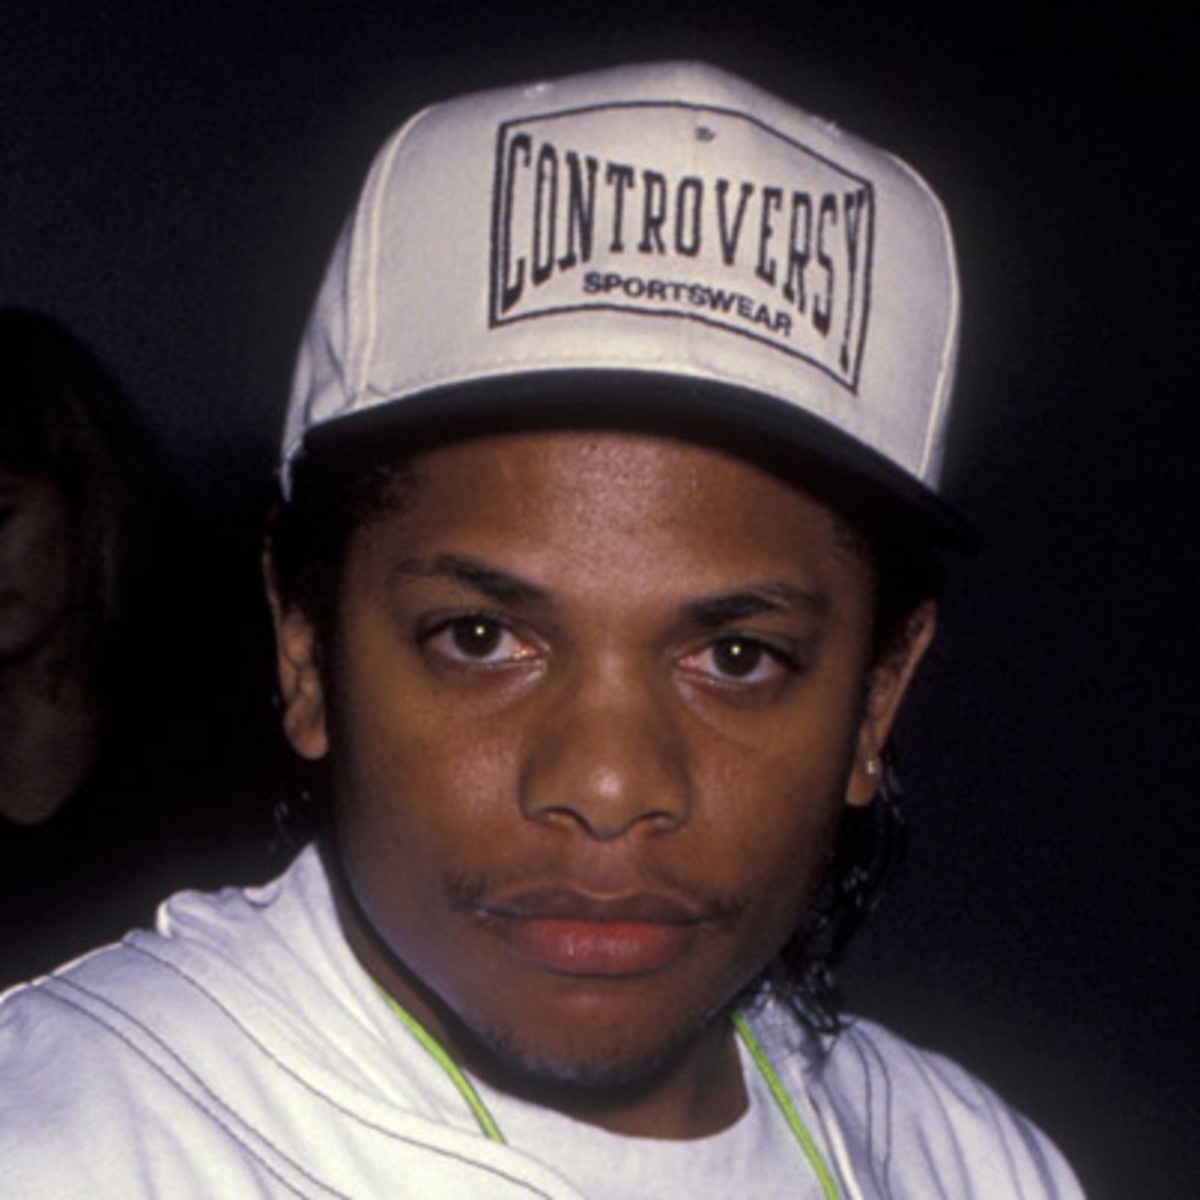 a biography of eric eazy e wright Ruthless records is an american record label as well as member and cofounder eric eazy-e wright he remained with ruthless, releasing several albums eazy-e released several high-profile albums dissing dr dre, including most famously it's on.